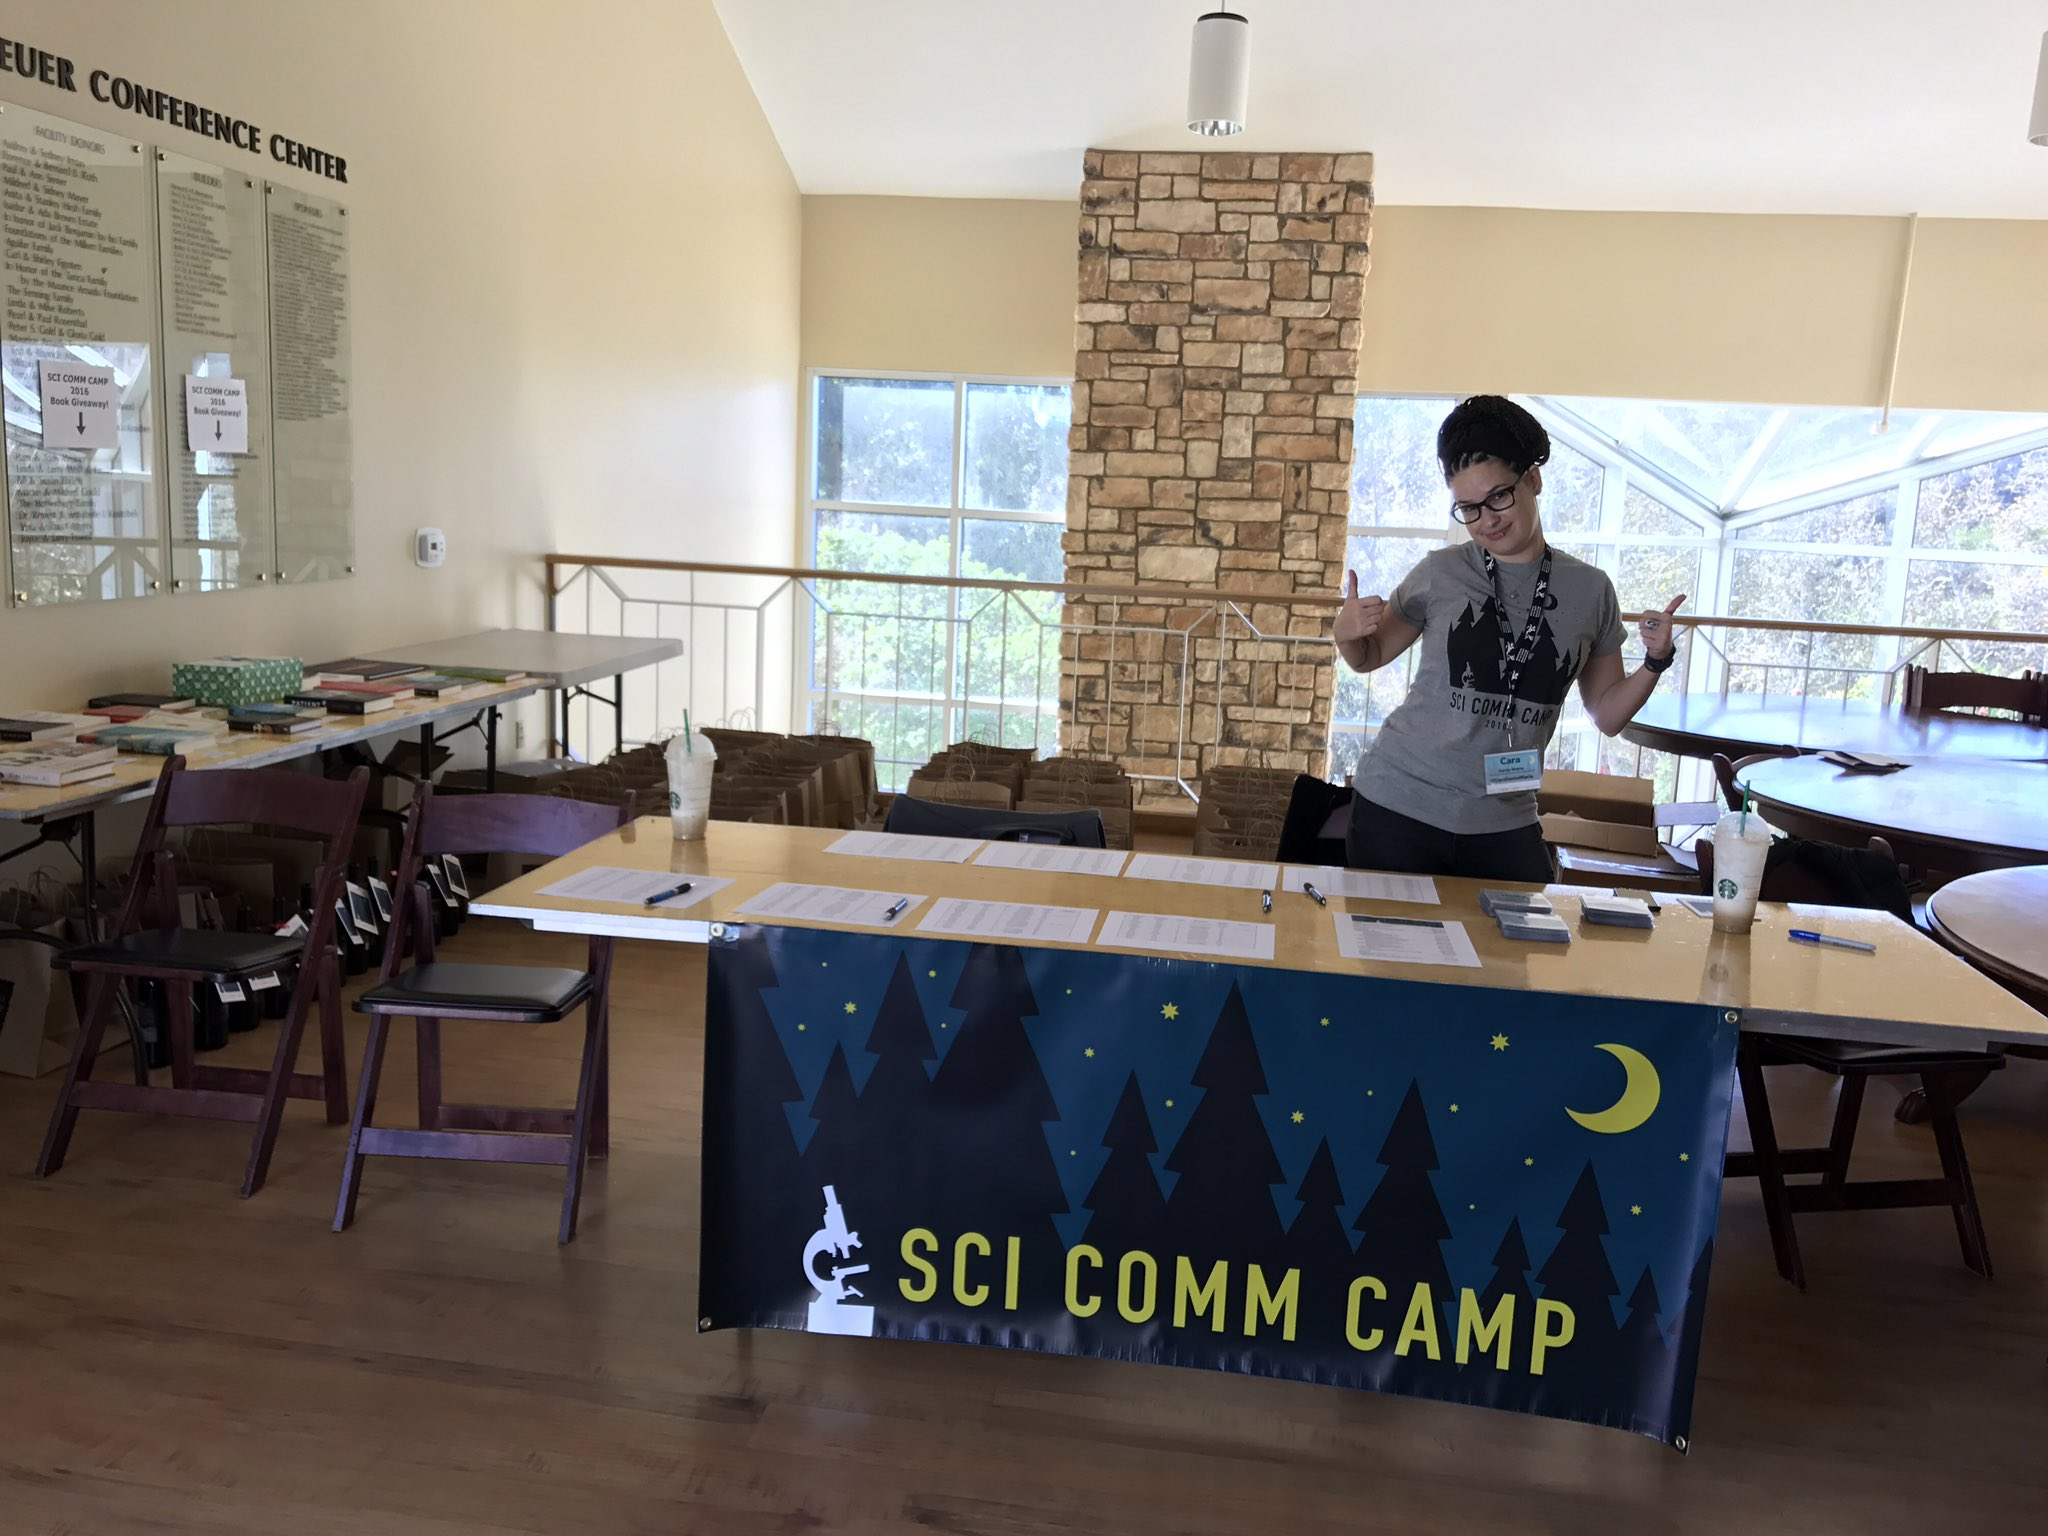 Can't wait to see everyone #SciCommCamp https://t.co/qUf2moovrU